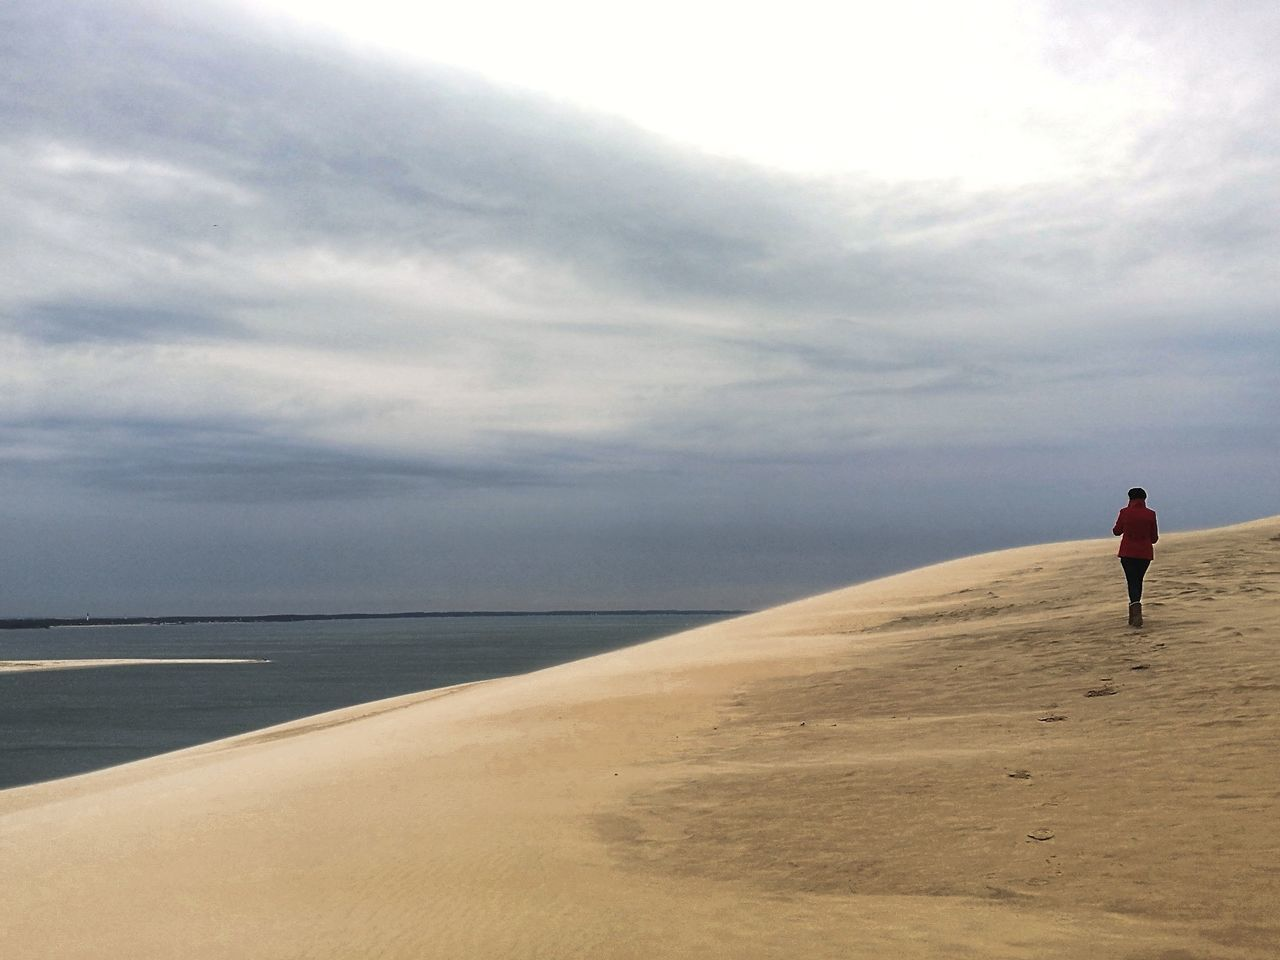 Beach Full Length Sea Outdoors Mature Adult Horizon Over Water Adults Only Sand Cloud - Sky One Person Adult Vacations Sky People Day Only Men Nature One Man Only Beauty In Nature Beach Coast Dune Du Pyla France Sand